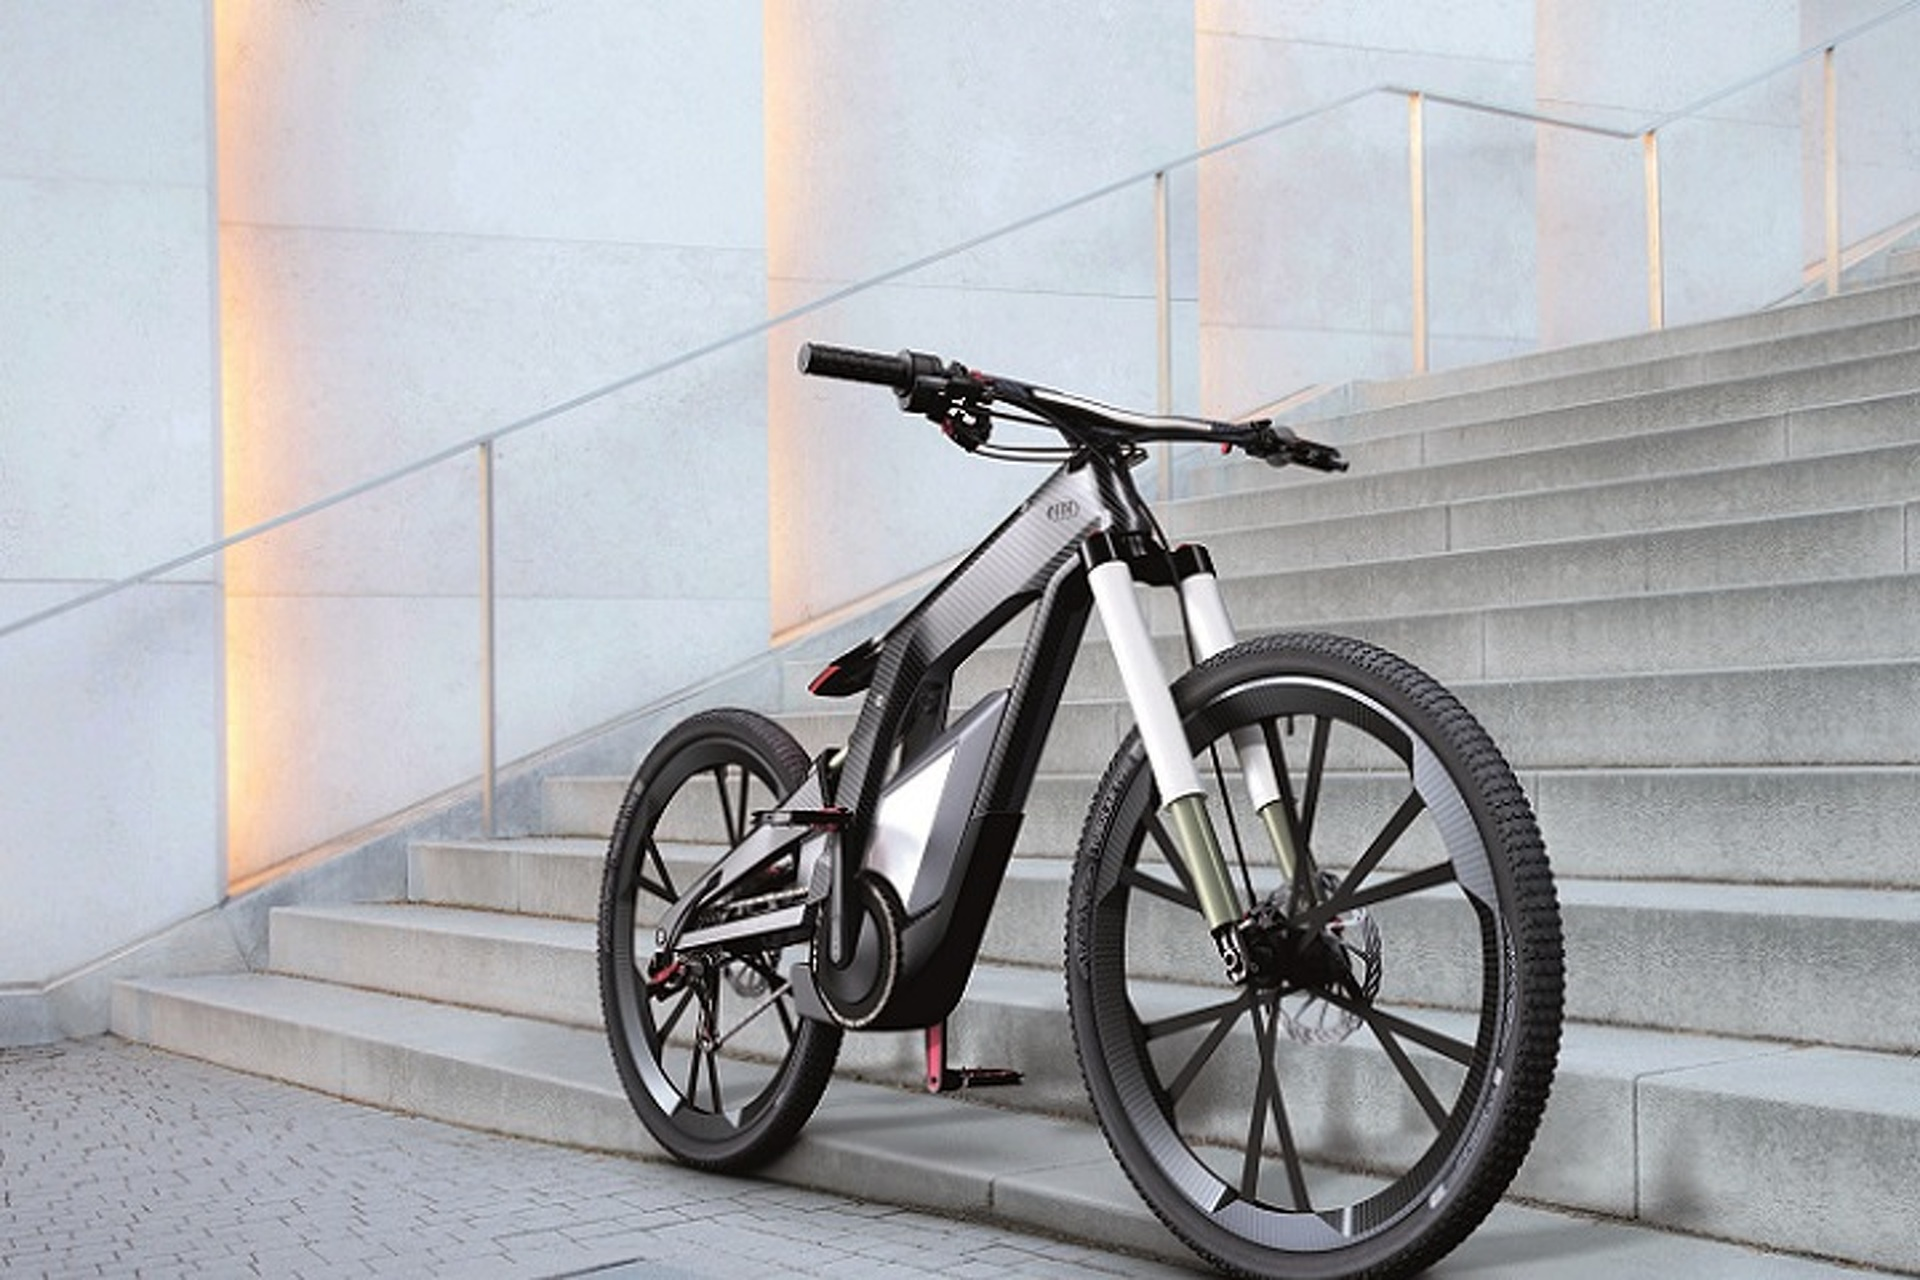 Audi Created a Beautiful E-Bike That You Won't Be Able to Buy